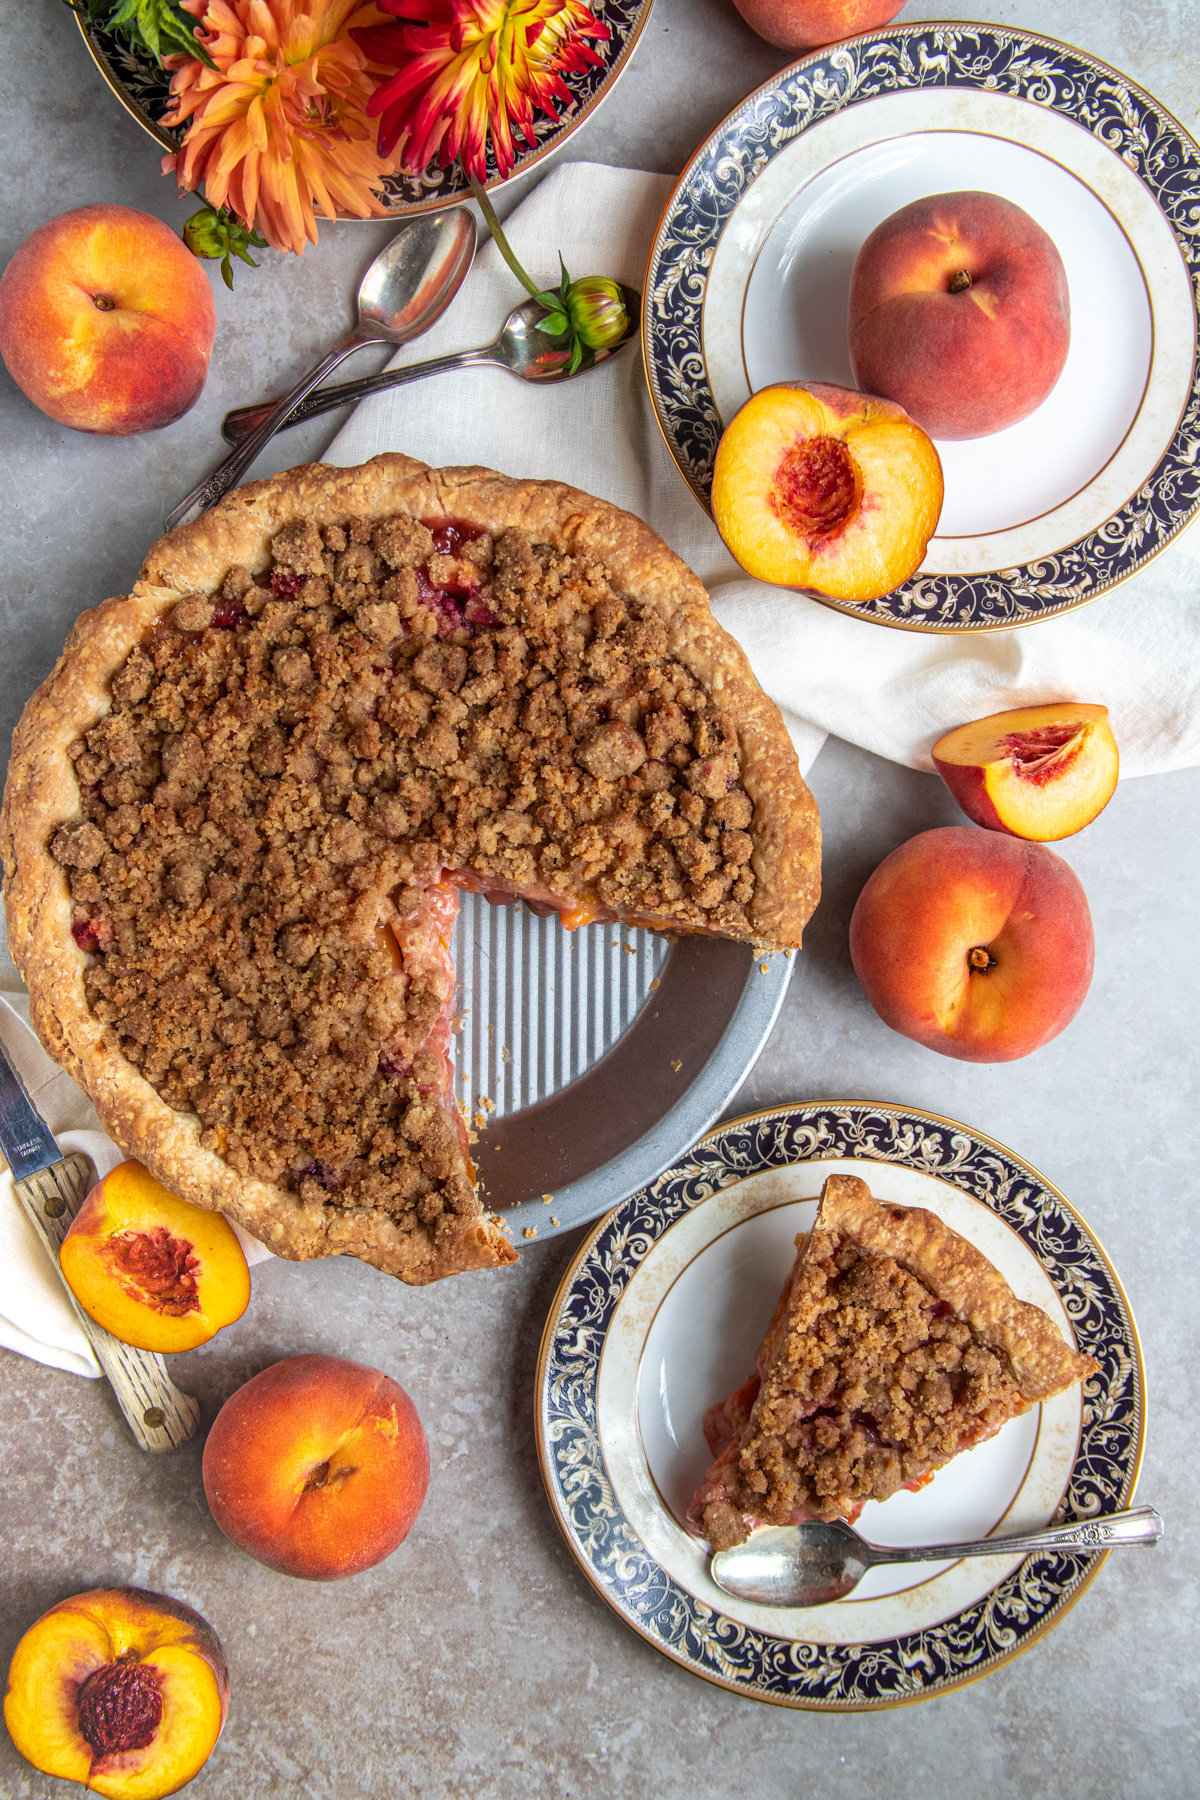 Peach crumble pie next to a dessert plate with a slice of pie.  Pie is surrounded by whole and cut peaches